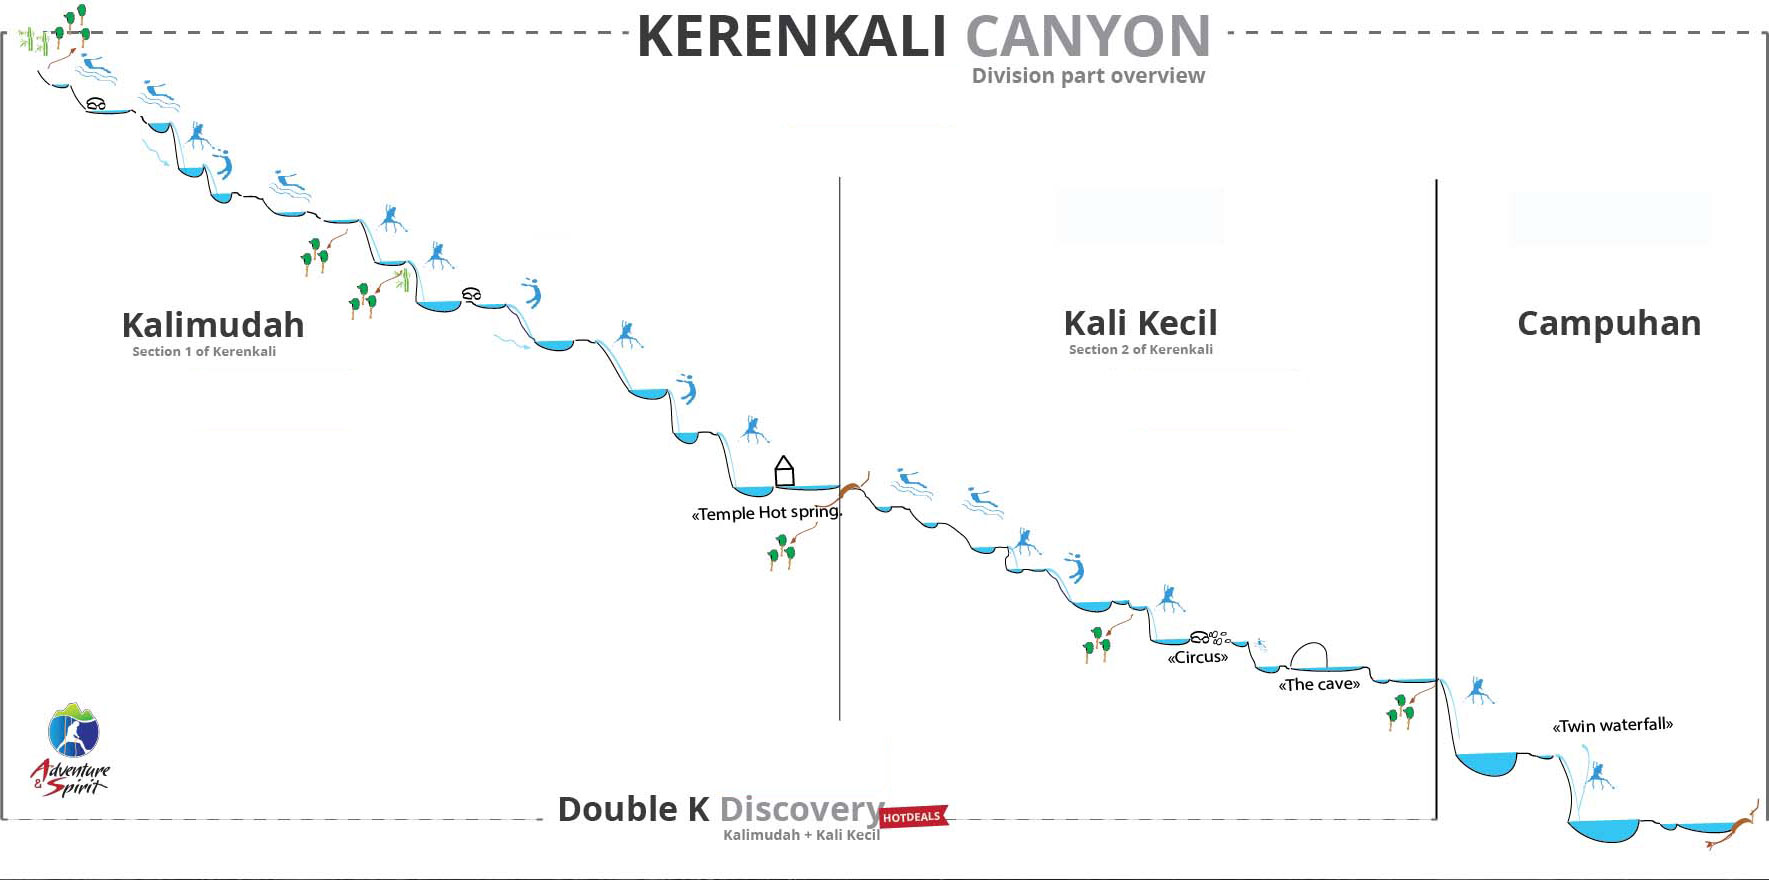 Kerenkali Canyon Division Part Overview